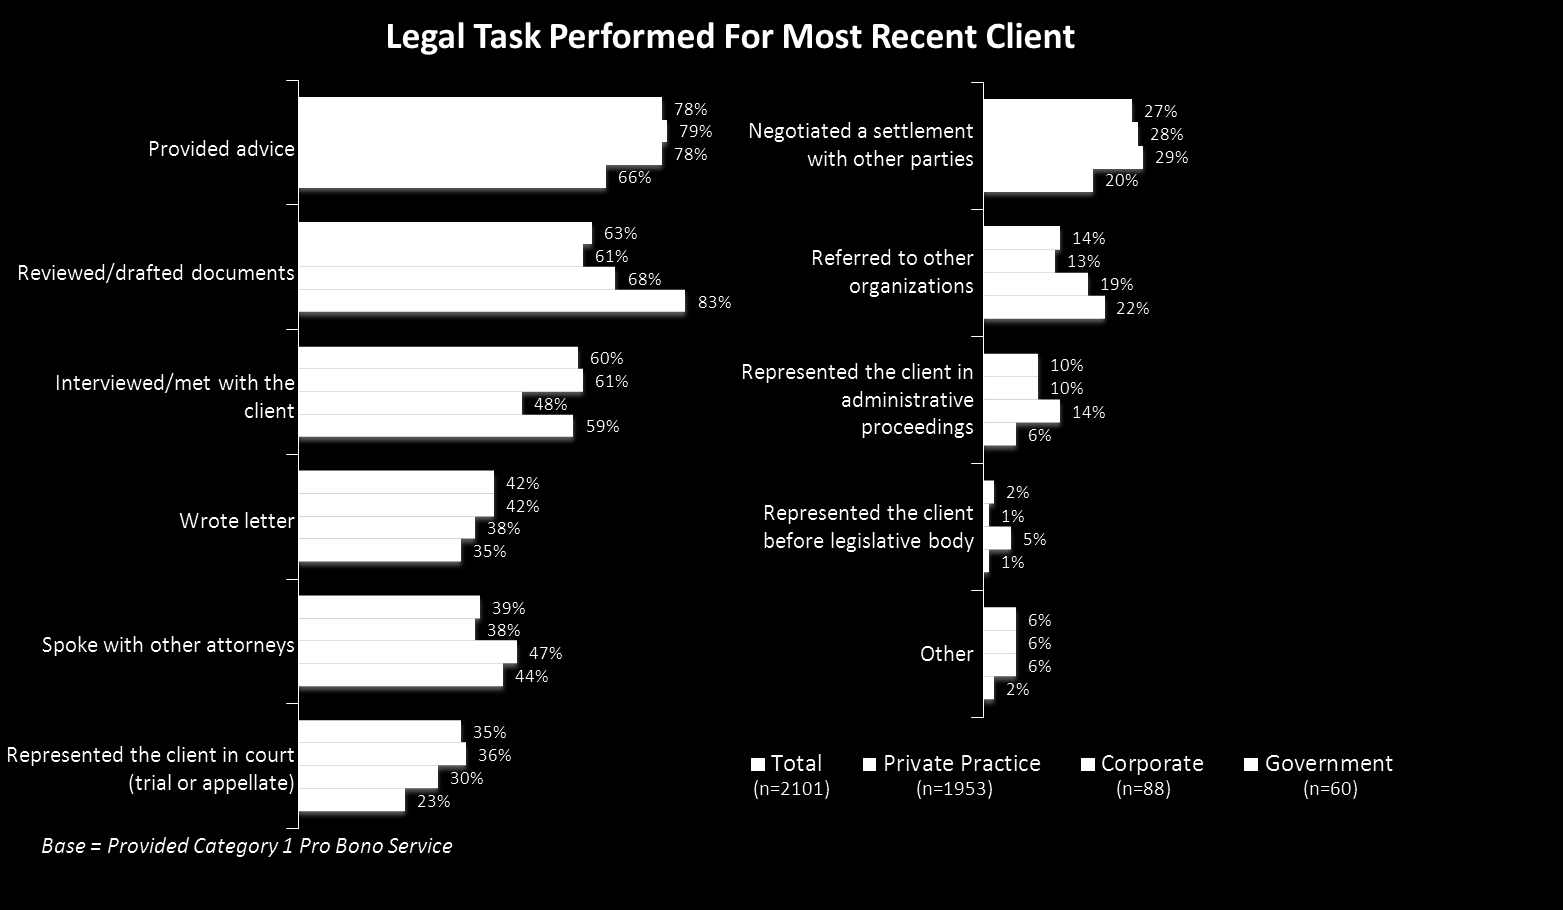 Tasks performed were consistent with attorneys expectations for nearly all (95 percent) of the typical pro bono matters provided in 2011 (Fig. 14).